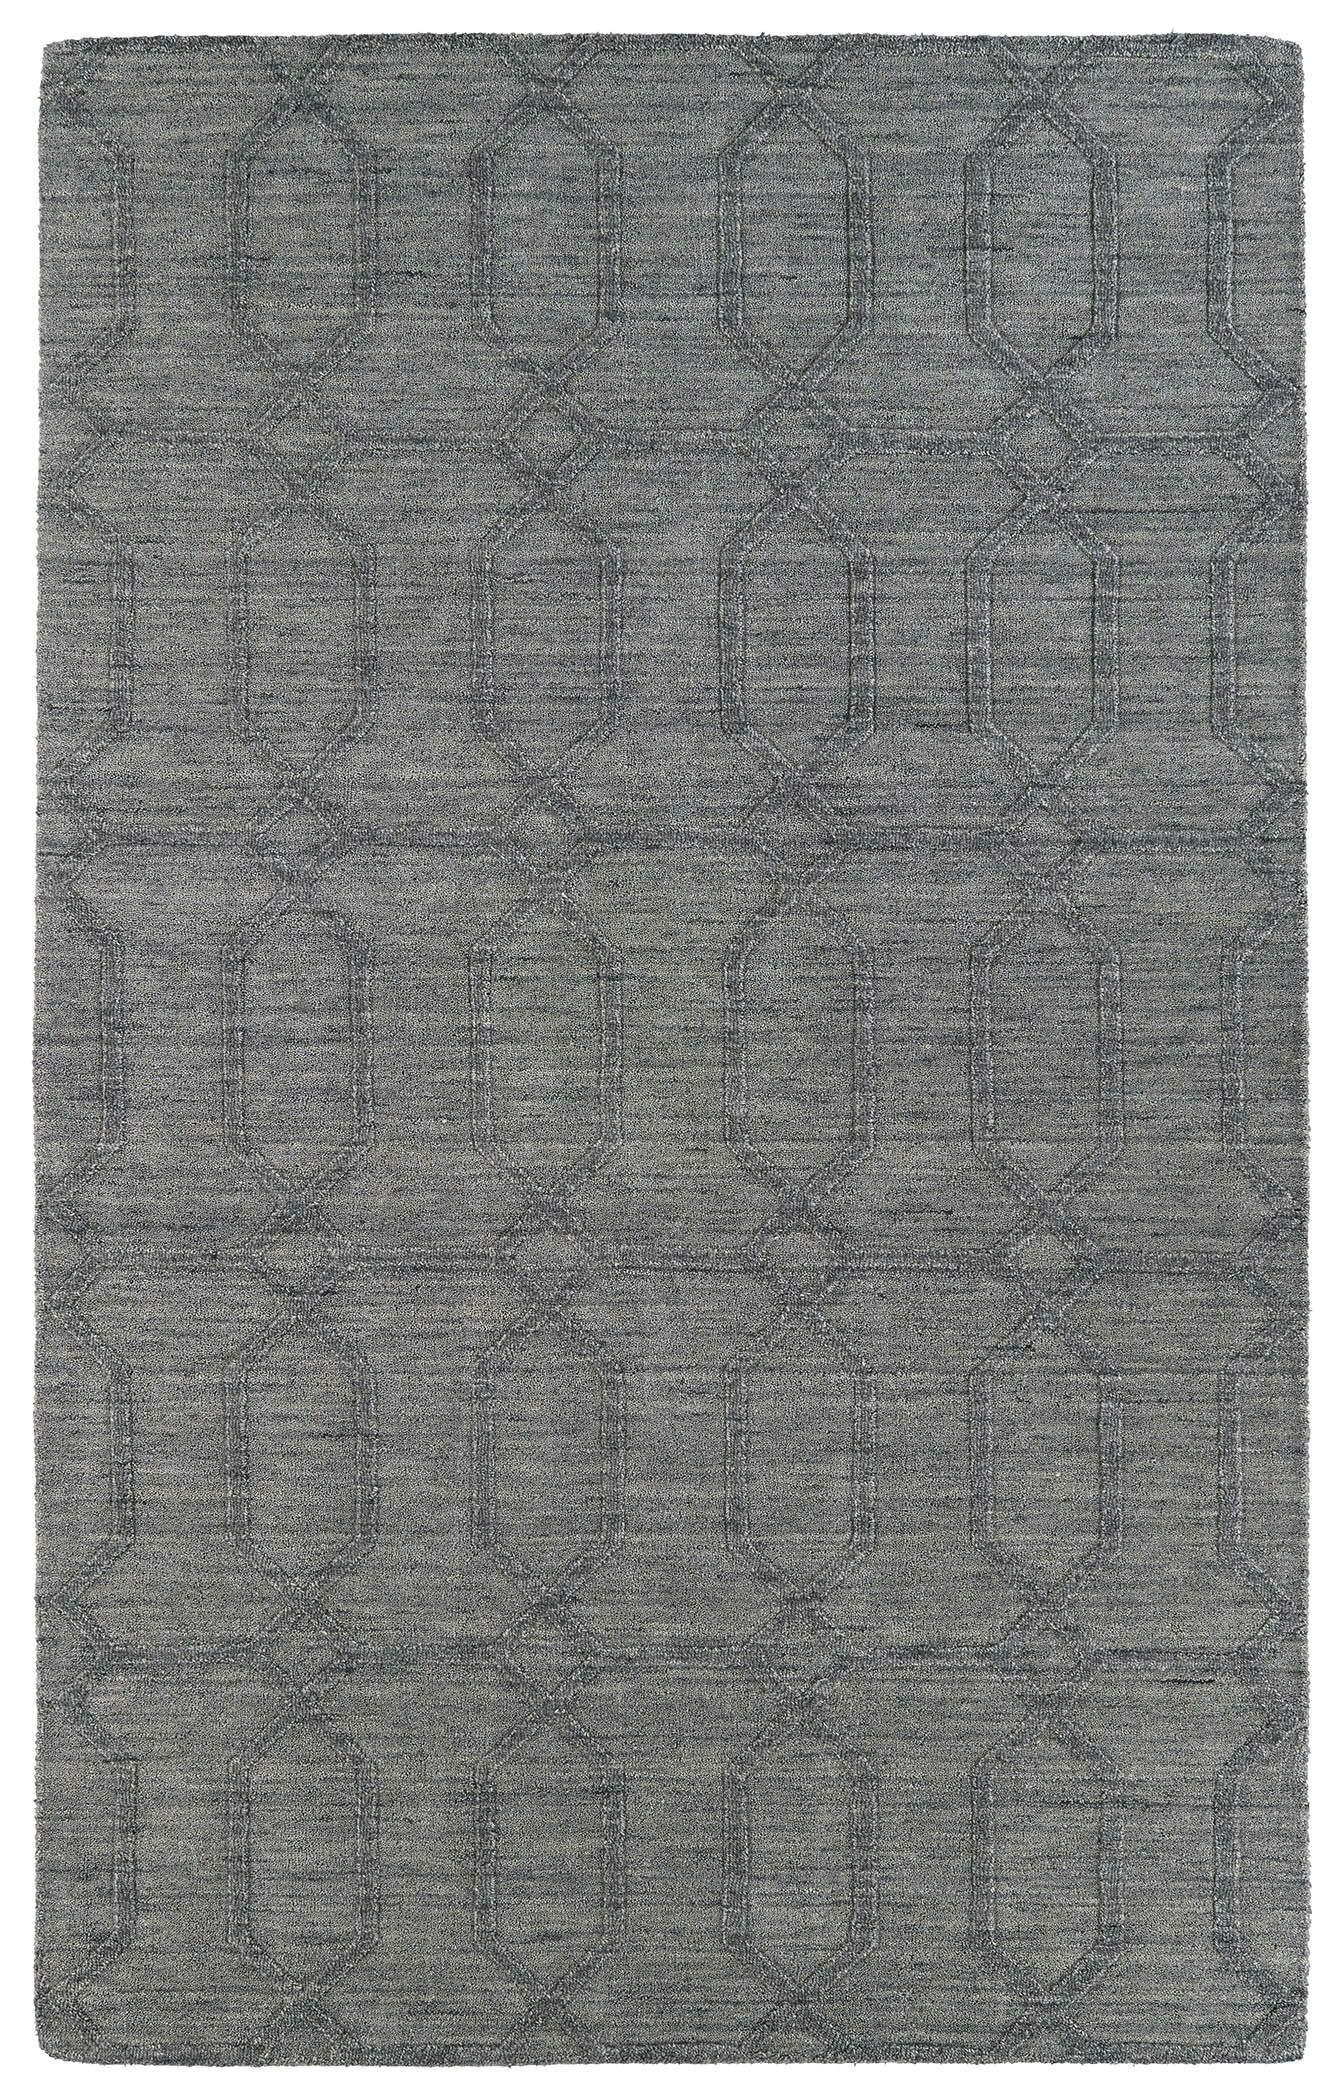 Dobson Hand-Tufted Gray Area Rug Rug Size: Rectangle 5' x 8'